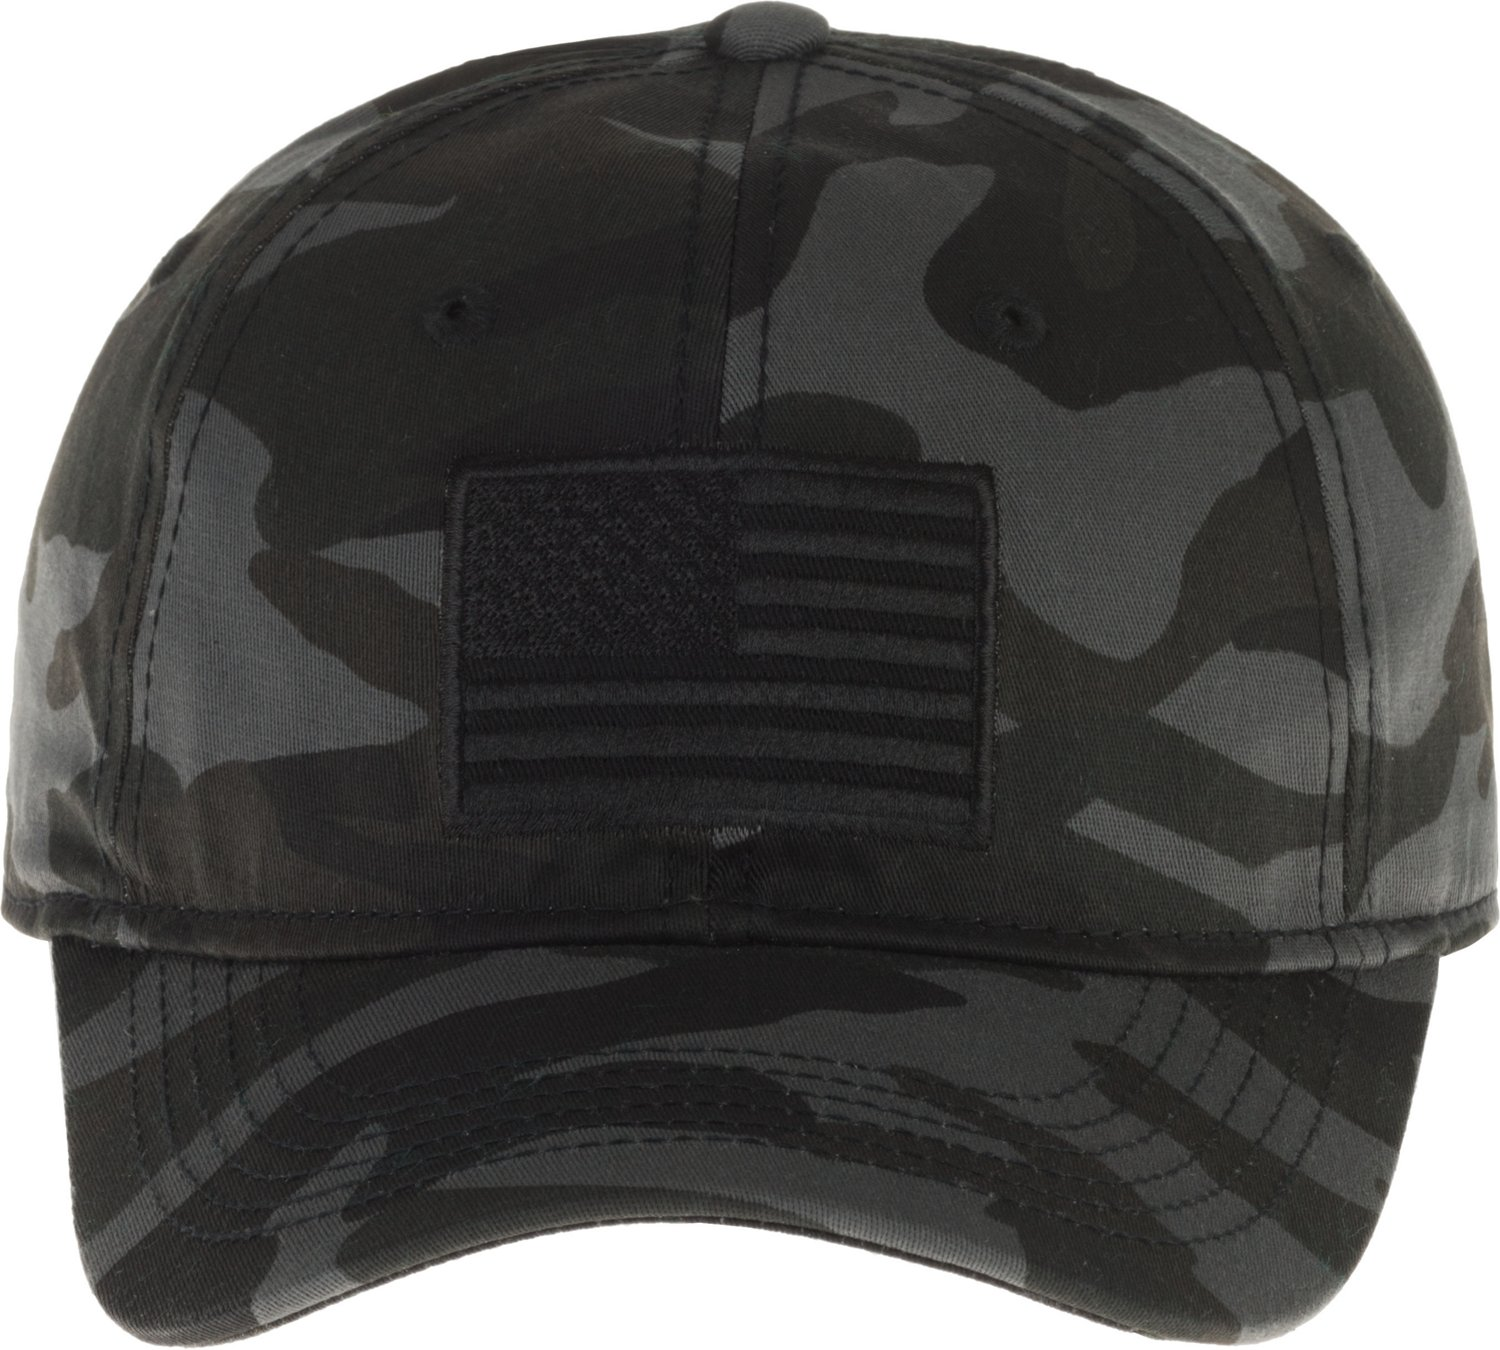 b0ff0eac8b32f Display product reviews for Academy Sports + Outdoors Men s Americana Camo  Twill Hat